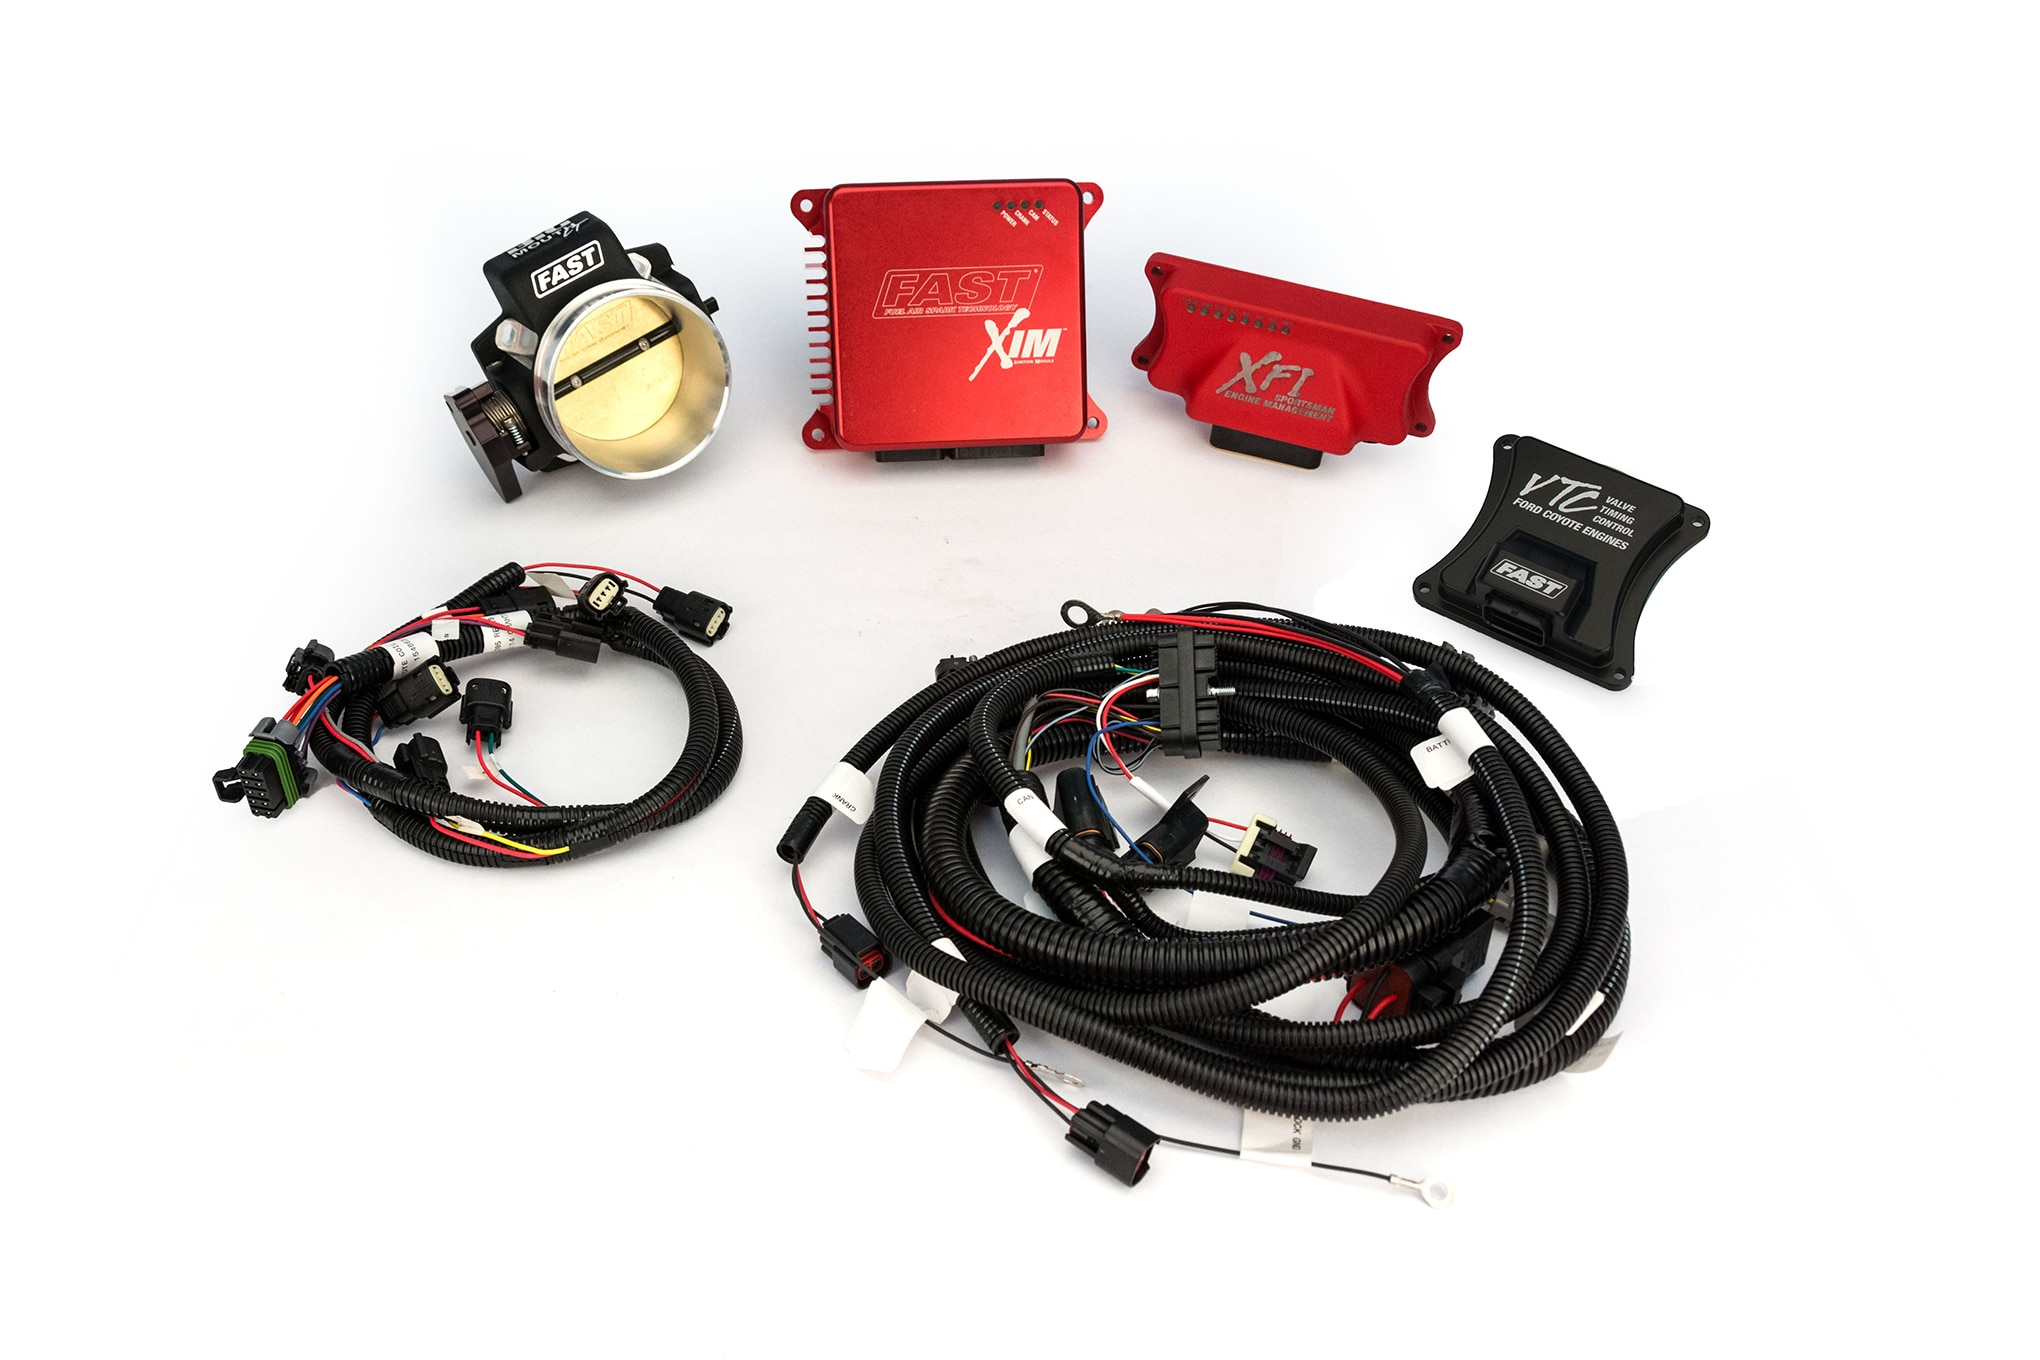 hight resolution of rewiring kit for a 1951 plymouth instructional how to hot rod network